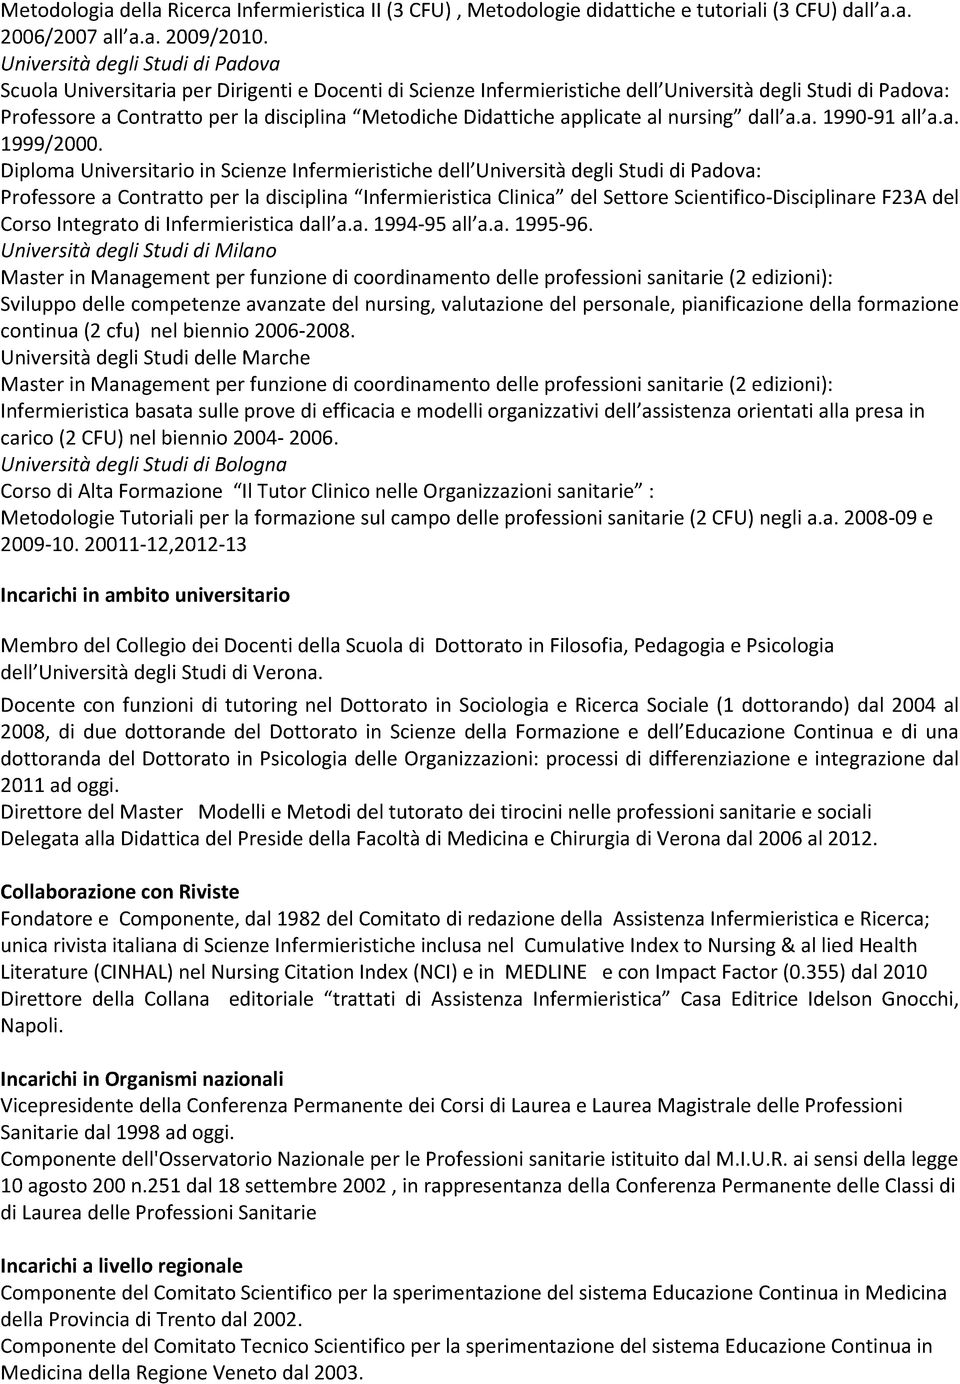 Didattiche applicate al nursing dall a.a. 1990-91 all a.a. 1999/2000.